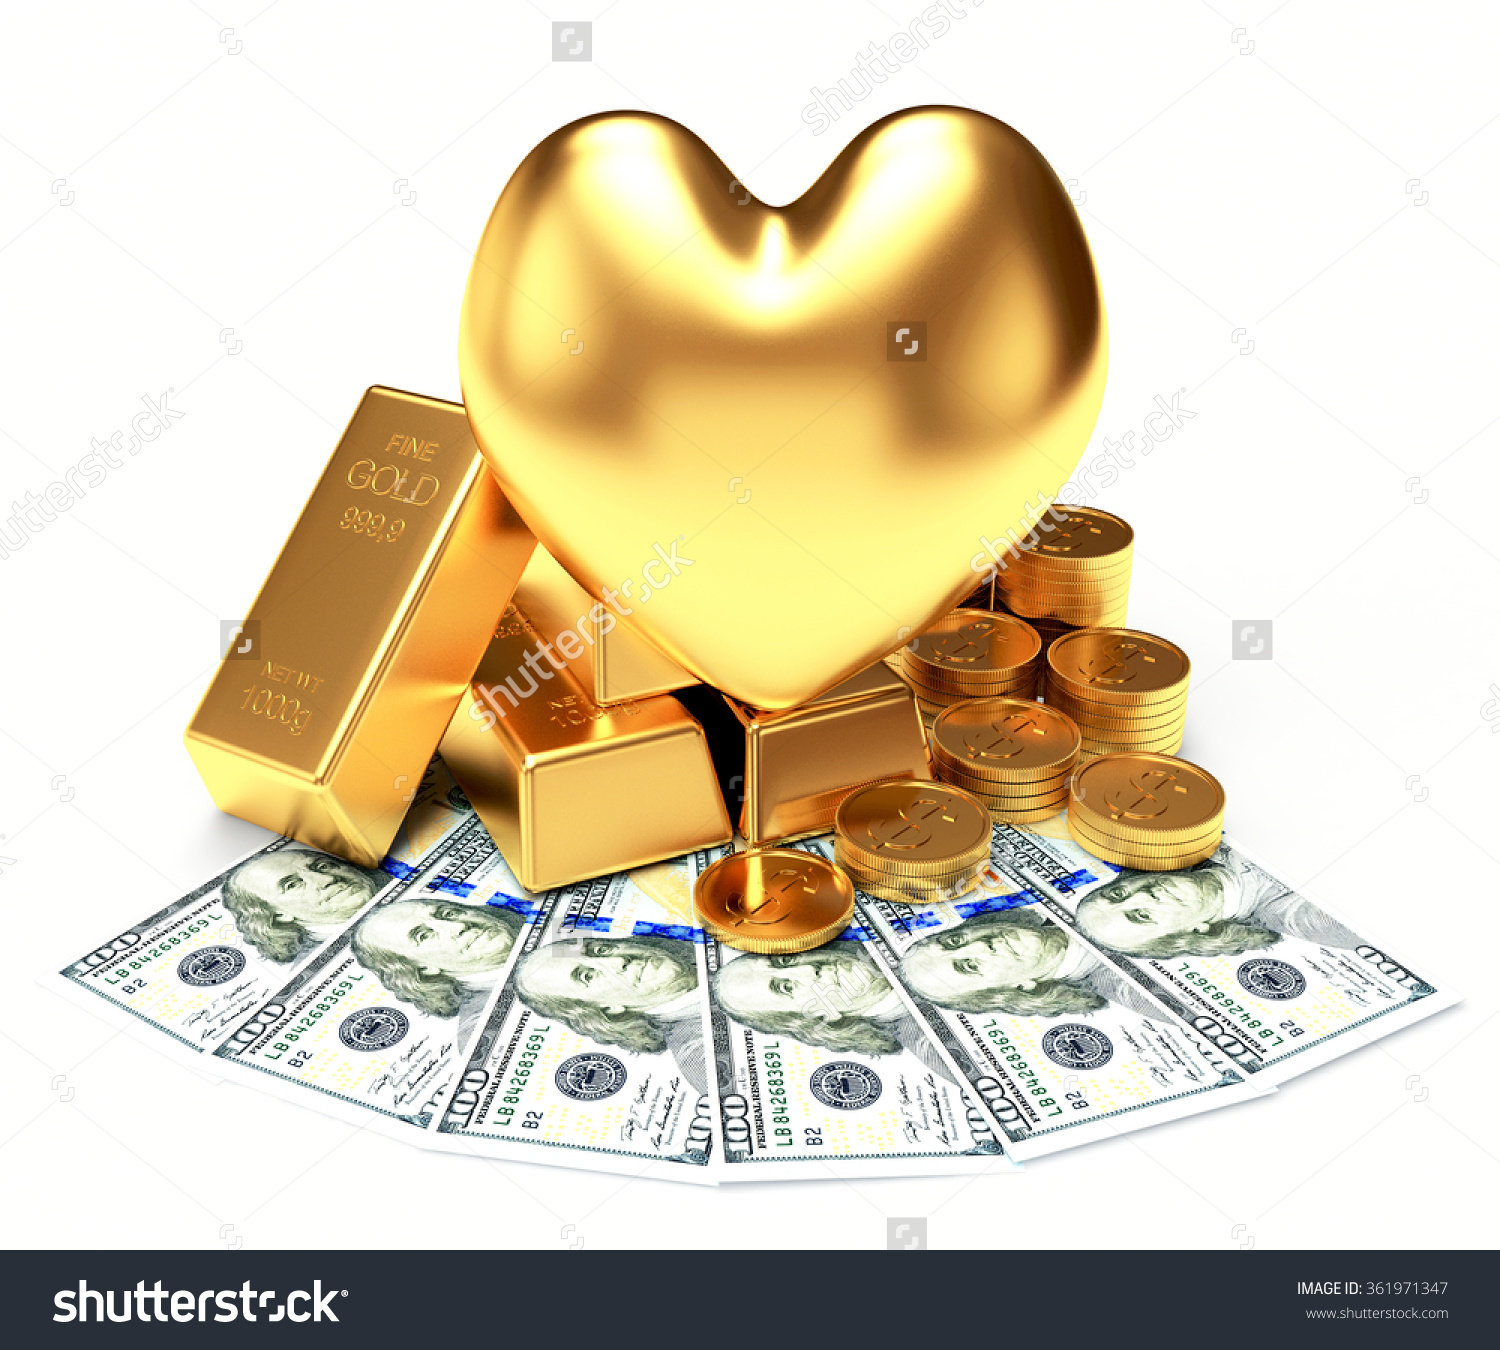 stock-photo-the-love-of-money-concept-golden-heart-among-a-heap-of-bullion-coins-and-dollar-bills-isolated-on-361971347.jpg